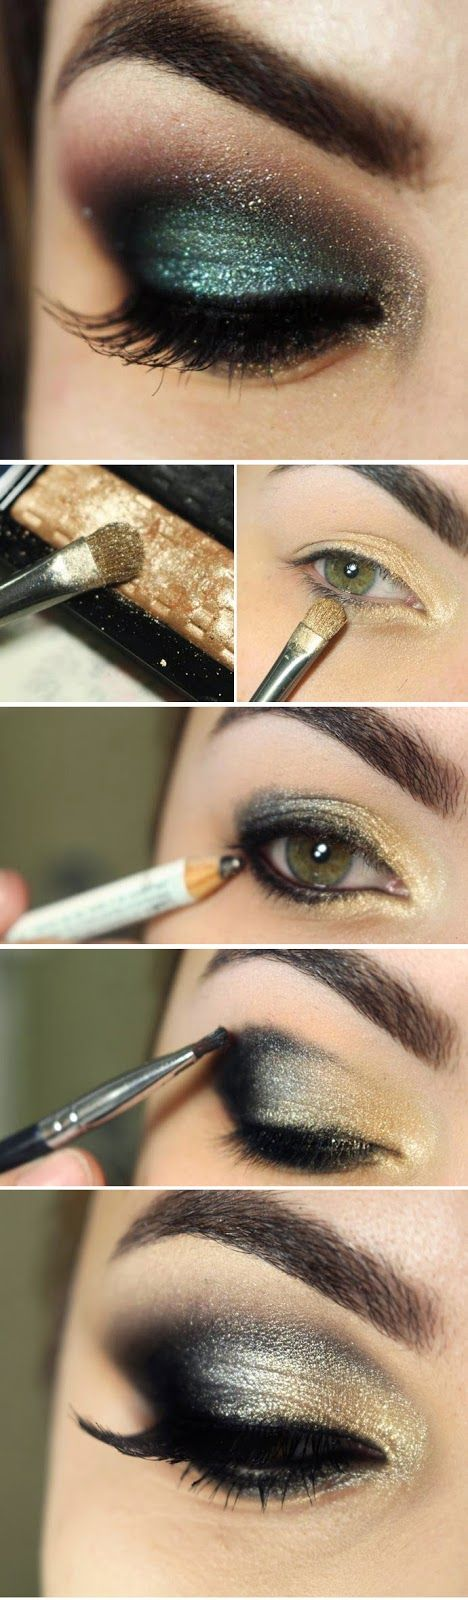 Best Ever Easy Explained Smokey Eye Makeup Tutorial How to apply makeup correctly, info here: www.crazymakeupideas.tk